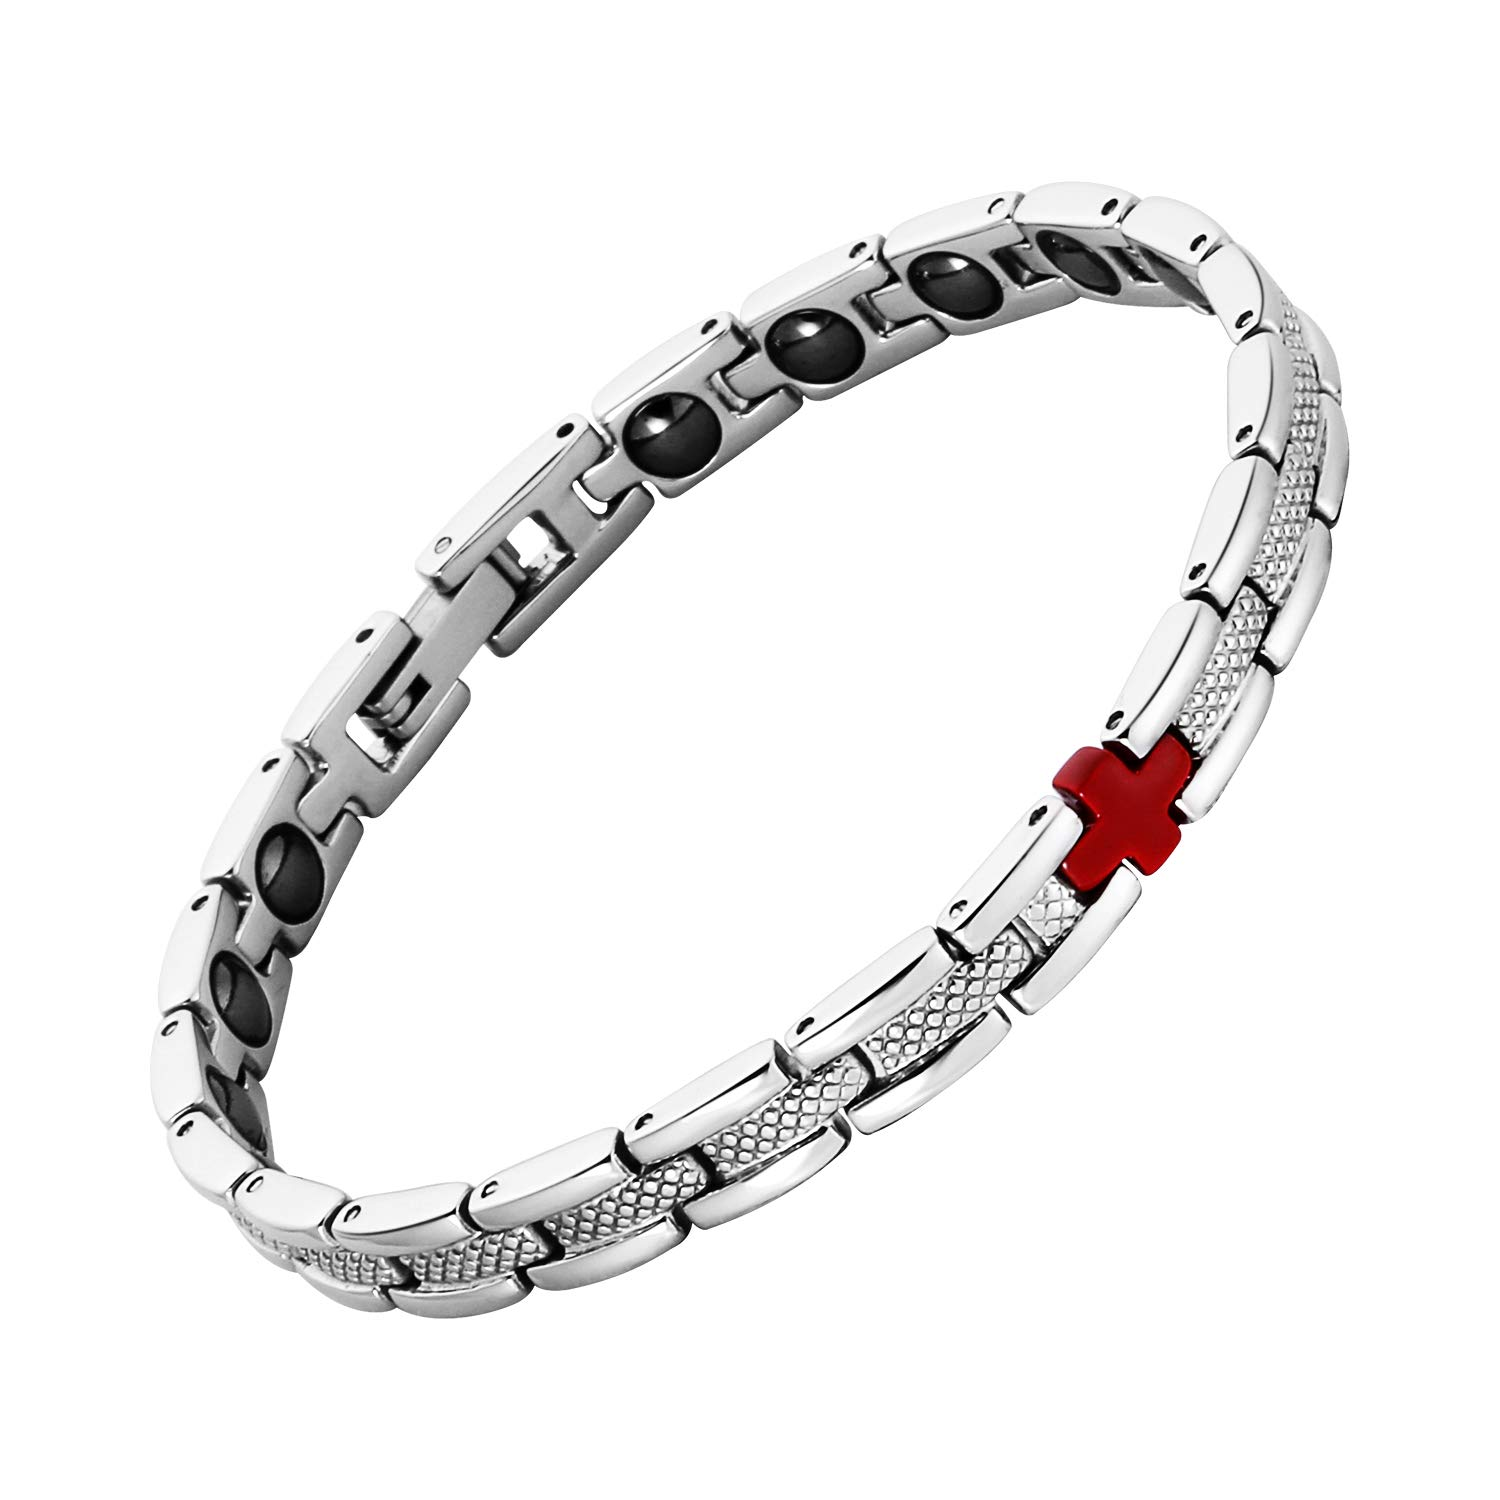 iZion Magnetic Therapy Bracelet Pain Relief for Arthritis Stainless Steel Health Wristband Gift for Women with Free Link Removal Tool (White)